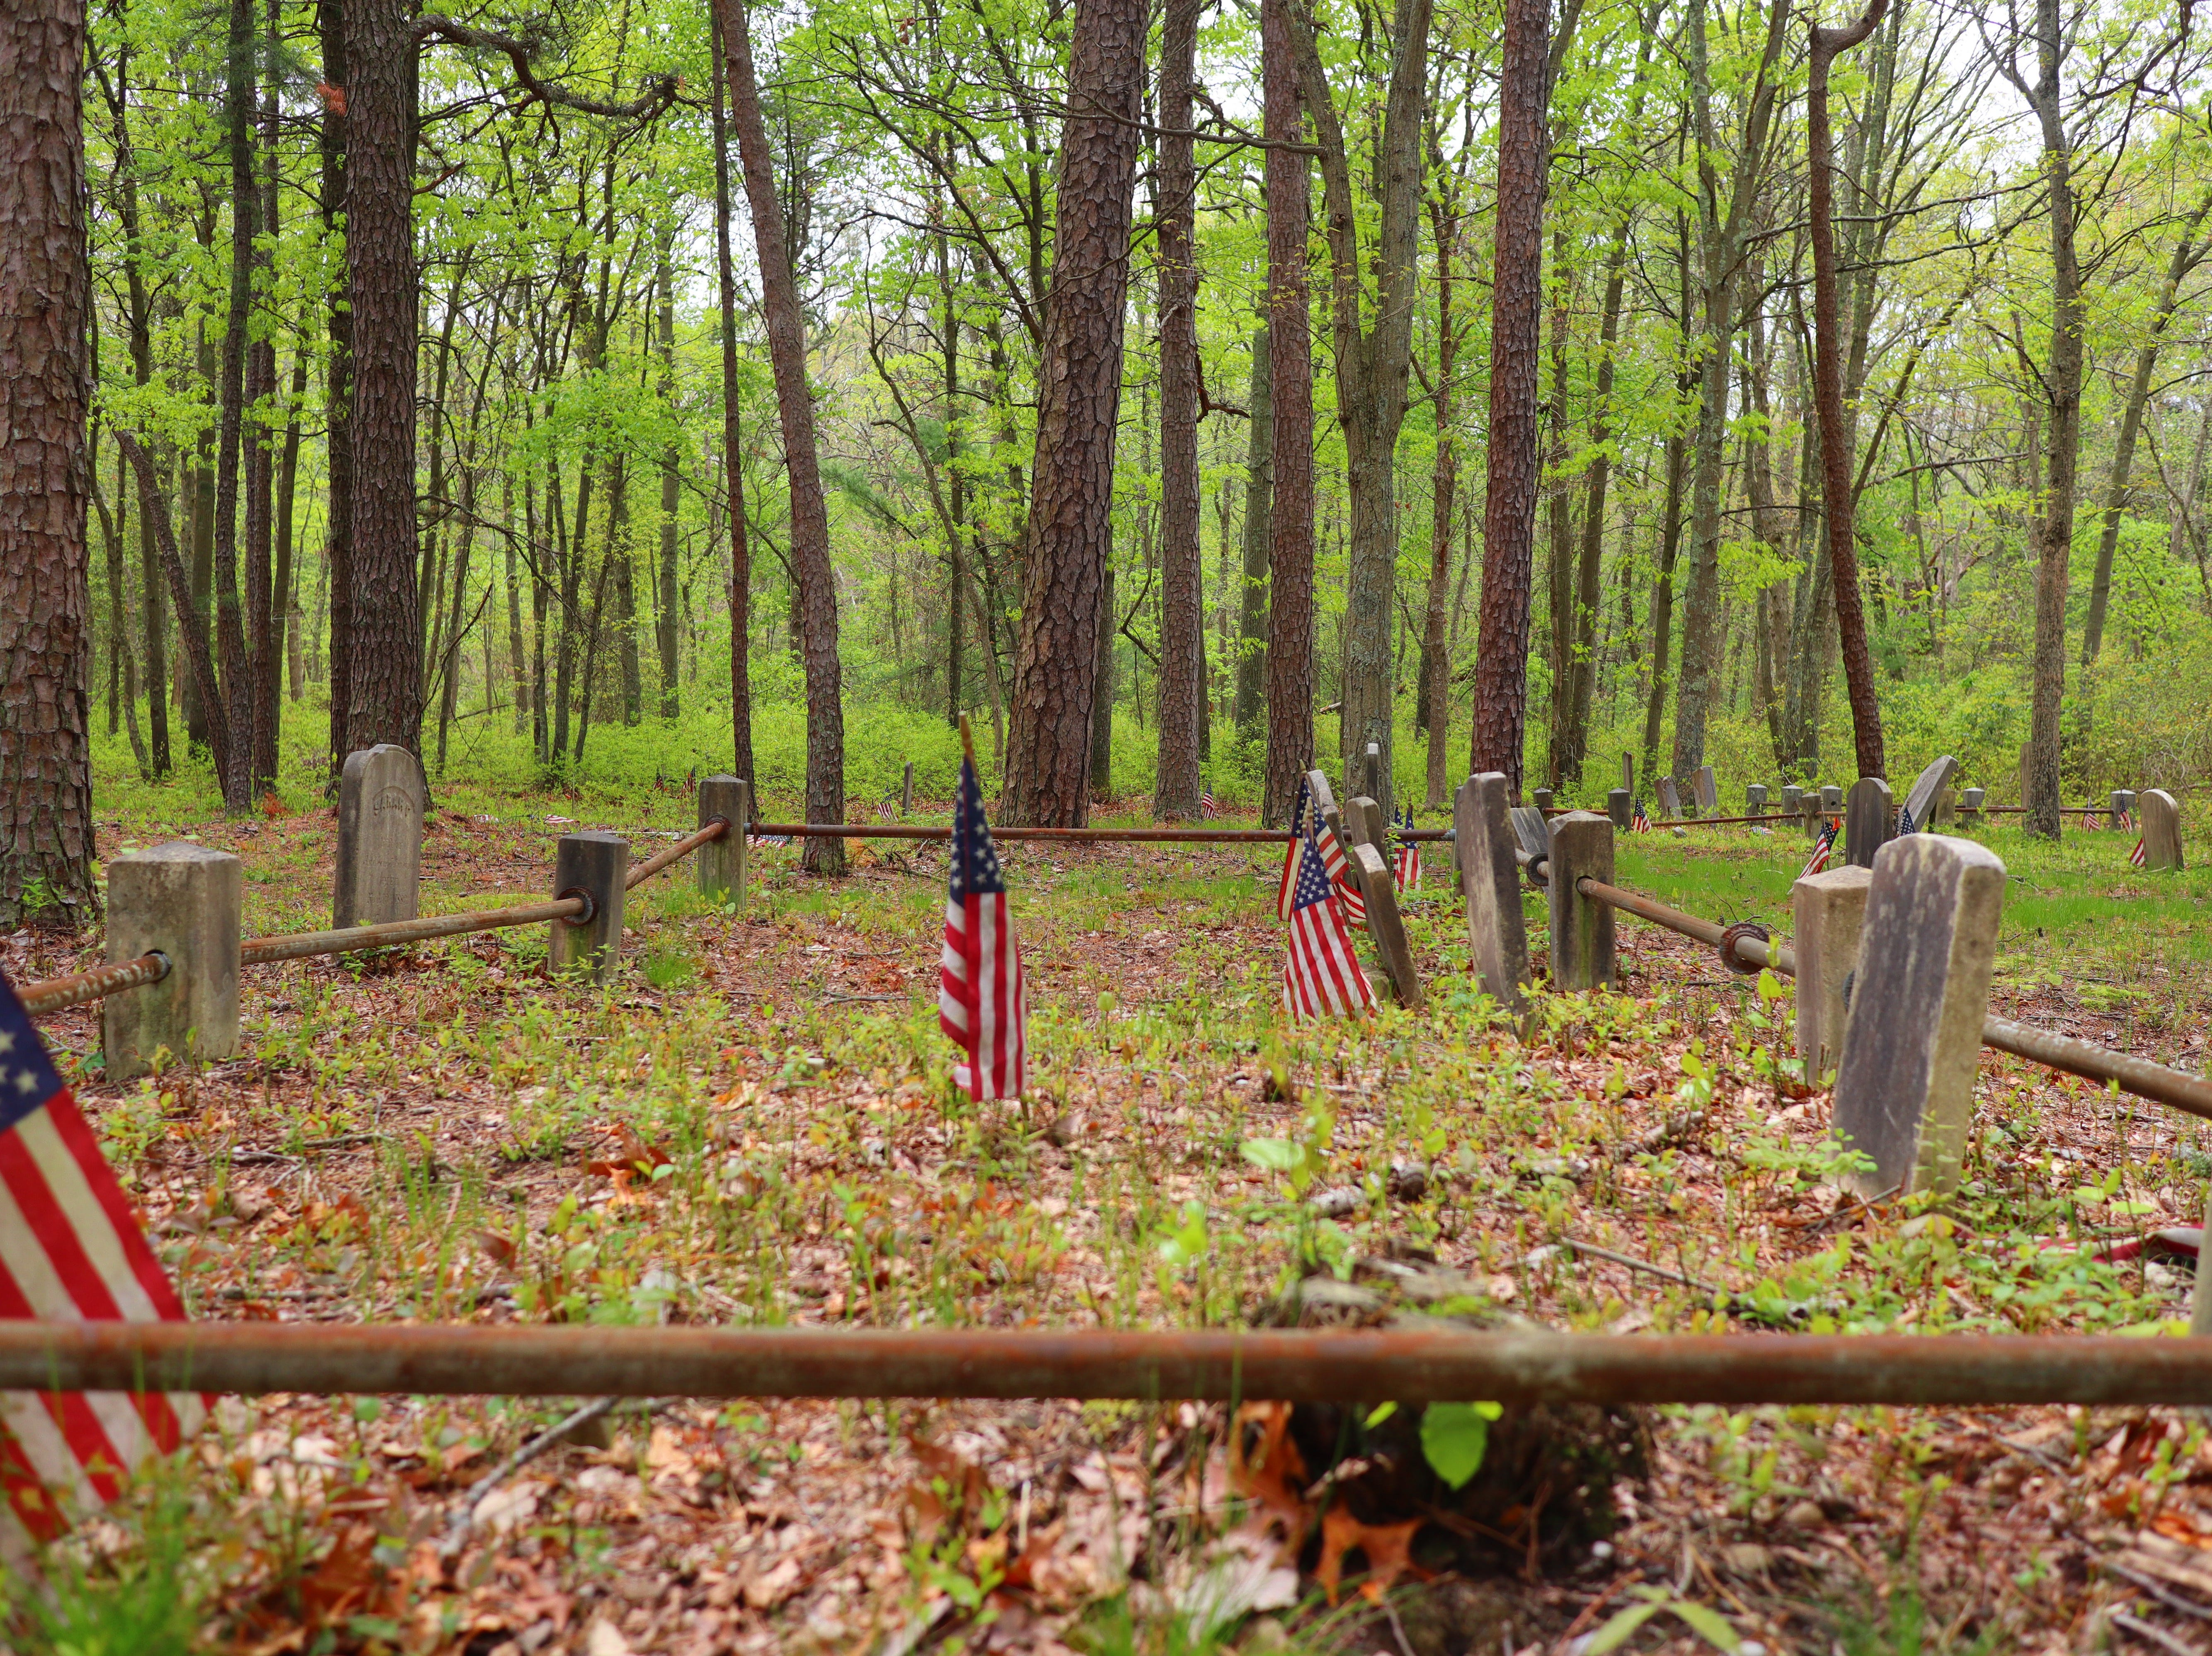 The Pine Brook Cemetery in Tinton Falls is the resting place for Native Americans dating back to the 19th century.